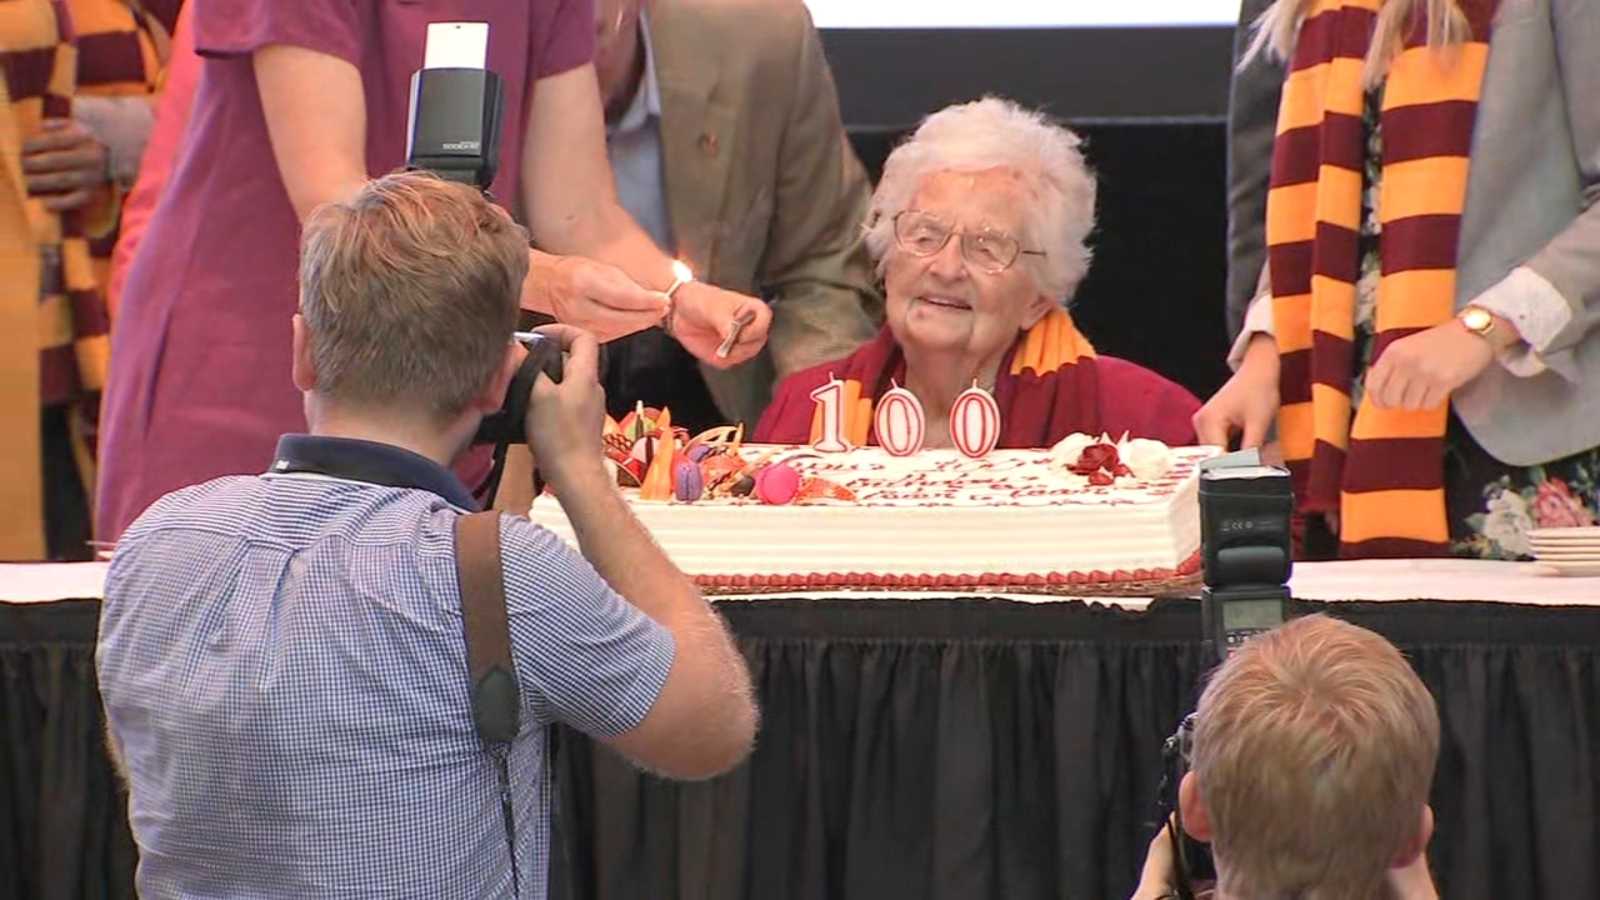 Fans across US celebrate Sister Jean's 100th birthday